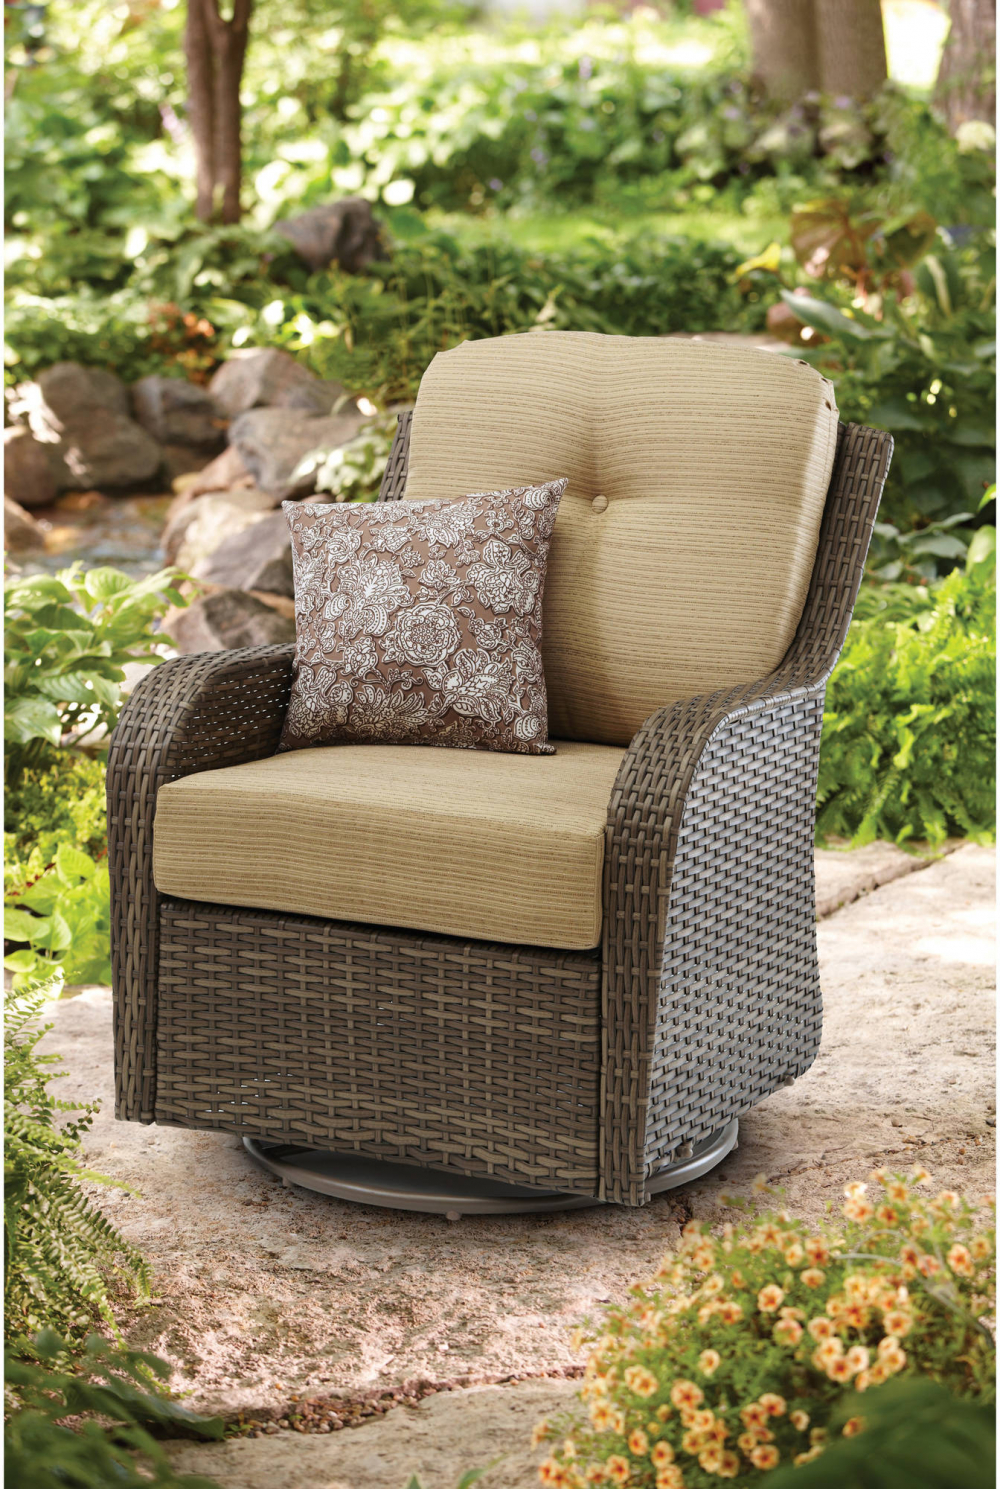 Better homes and gardens all motion swivel glider chair outdoor patio furniture